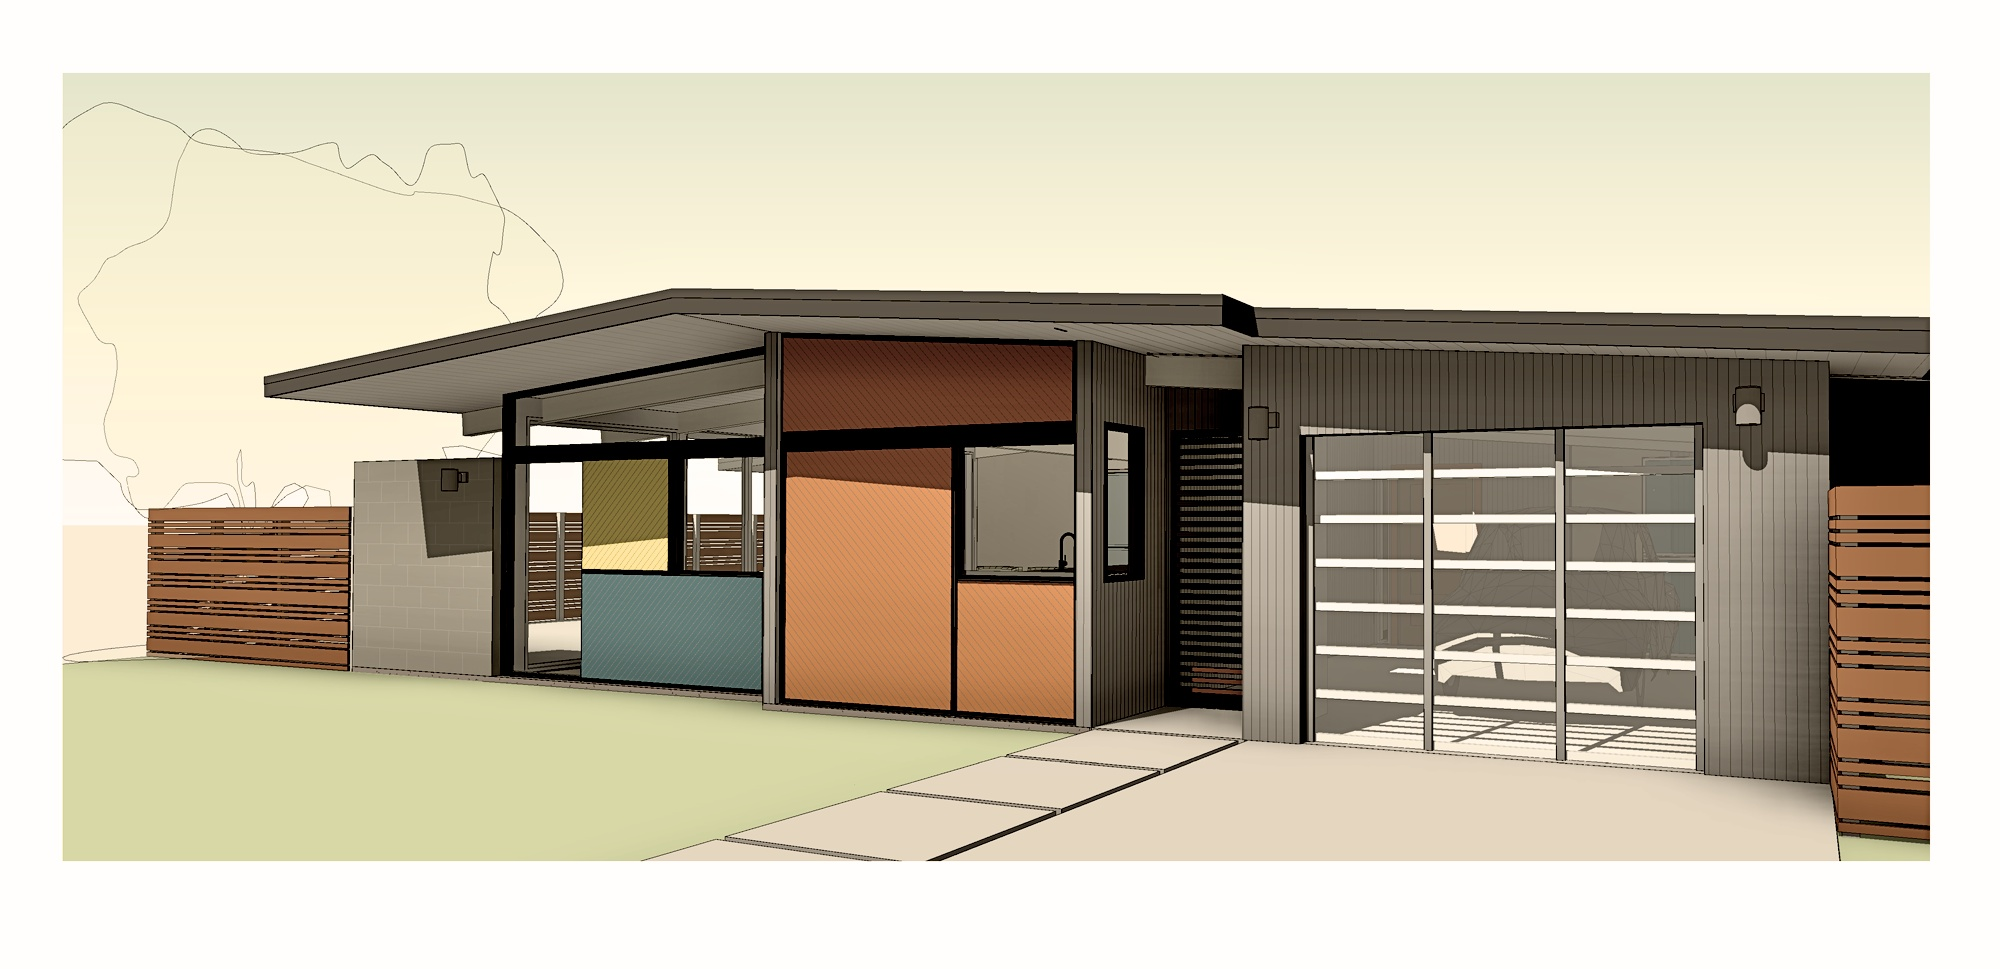 Close up view of the carport converted to a garage and a recessed entry gate